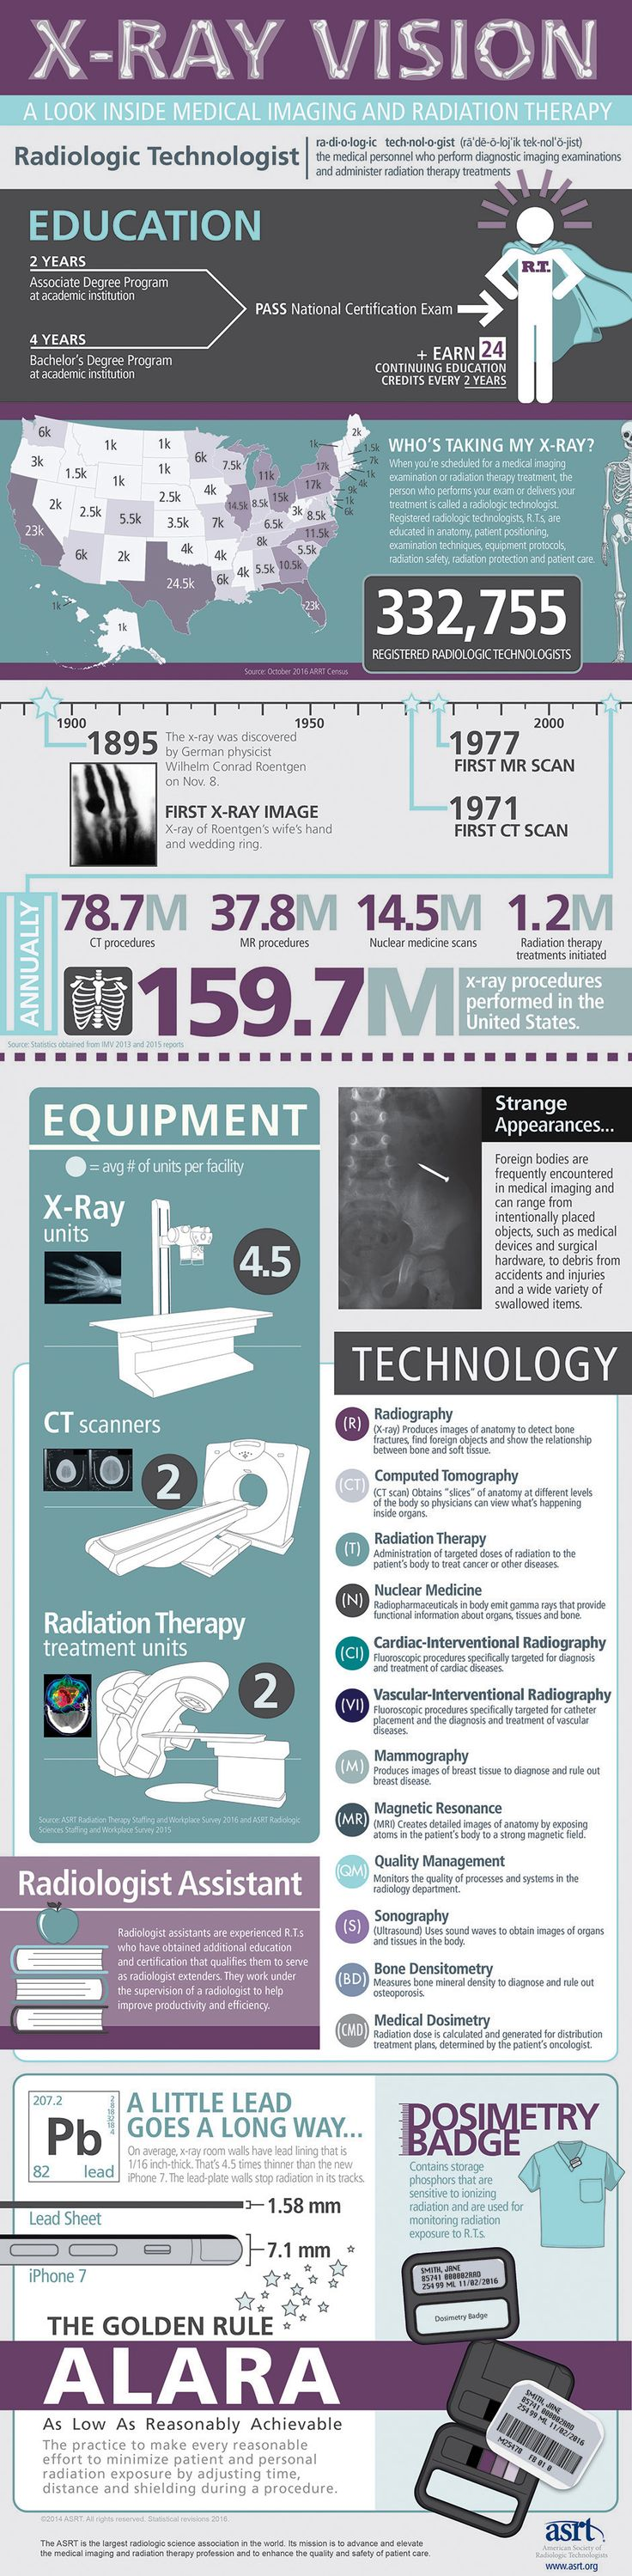 X-ray Vision Infographic: National Radiologic Technology Week® is celebrated annually to recognize the vital work of R.T.s across the nation. The celebration takes place each year during the week that includes Nov. 8 to commemorate the discovery of the x-ray by Wilhelm Conrad Roentgen on Nov. 8, 1895.  The week-long celebration calls attention to the important role medical imaging and radiation therapy professionals play in patient care and health care safety.